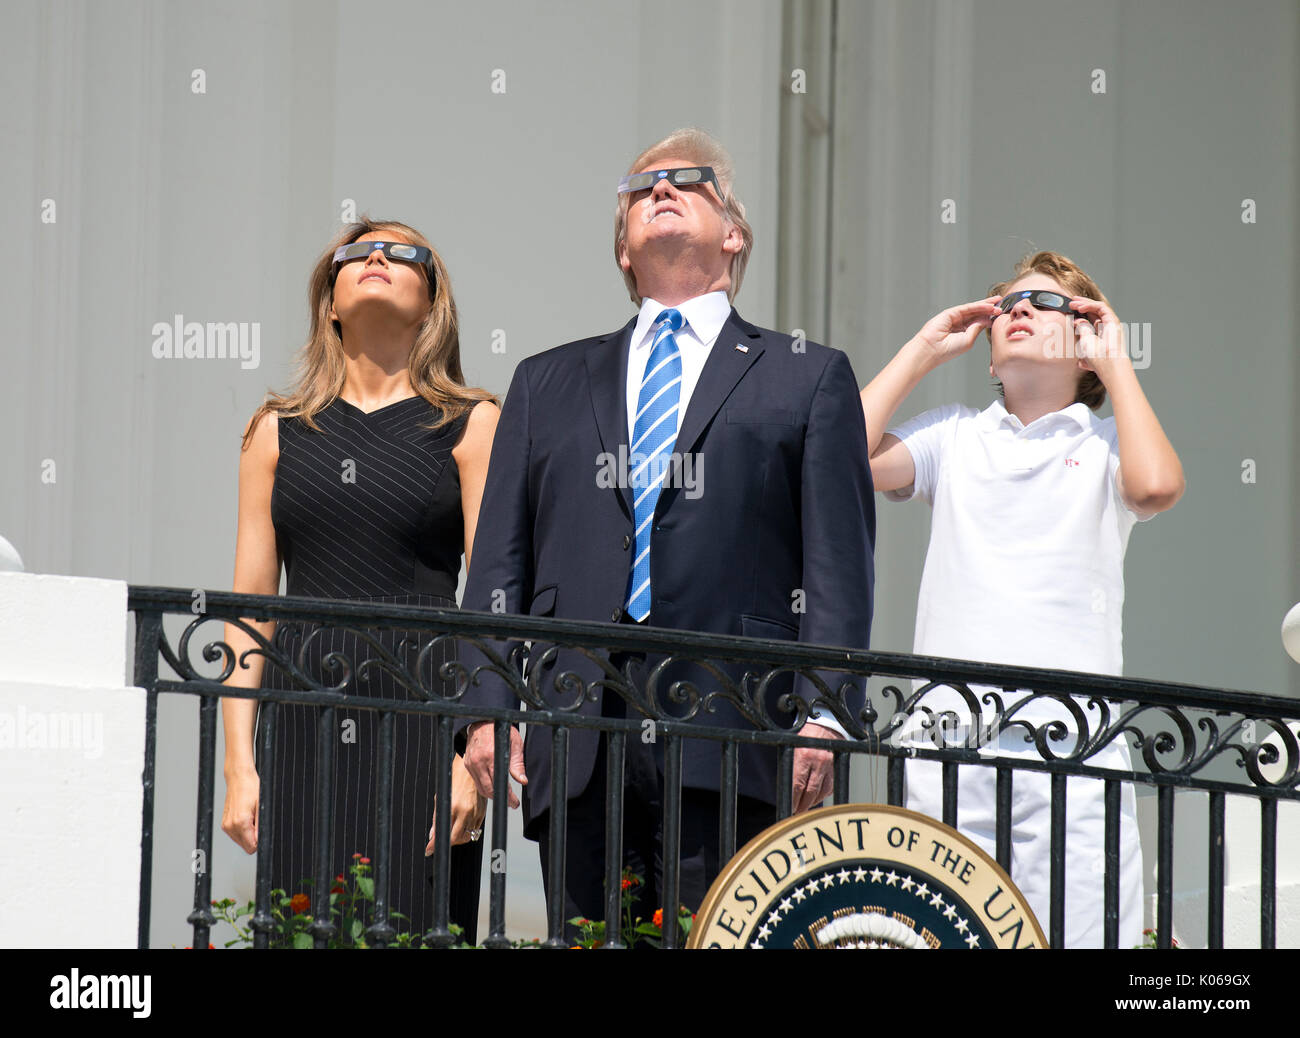 United States President Donald J. Trump, center, accompanied by first lady Melania Trump, left, and Barron Trump, - Stock Image